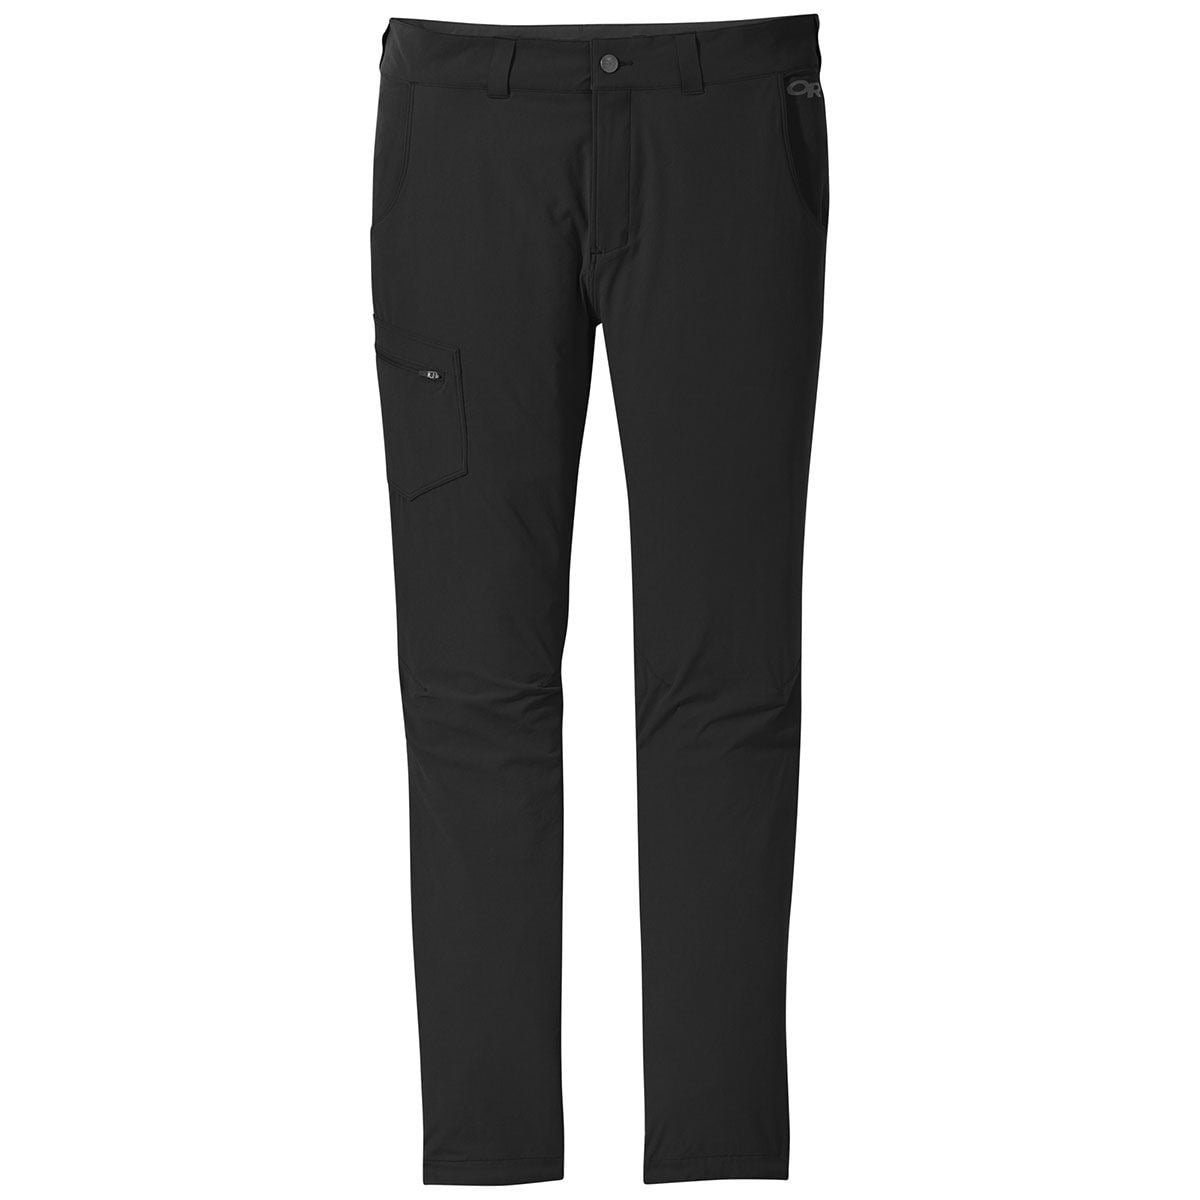 OR Ferrosi Men's Pants